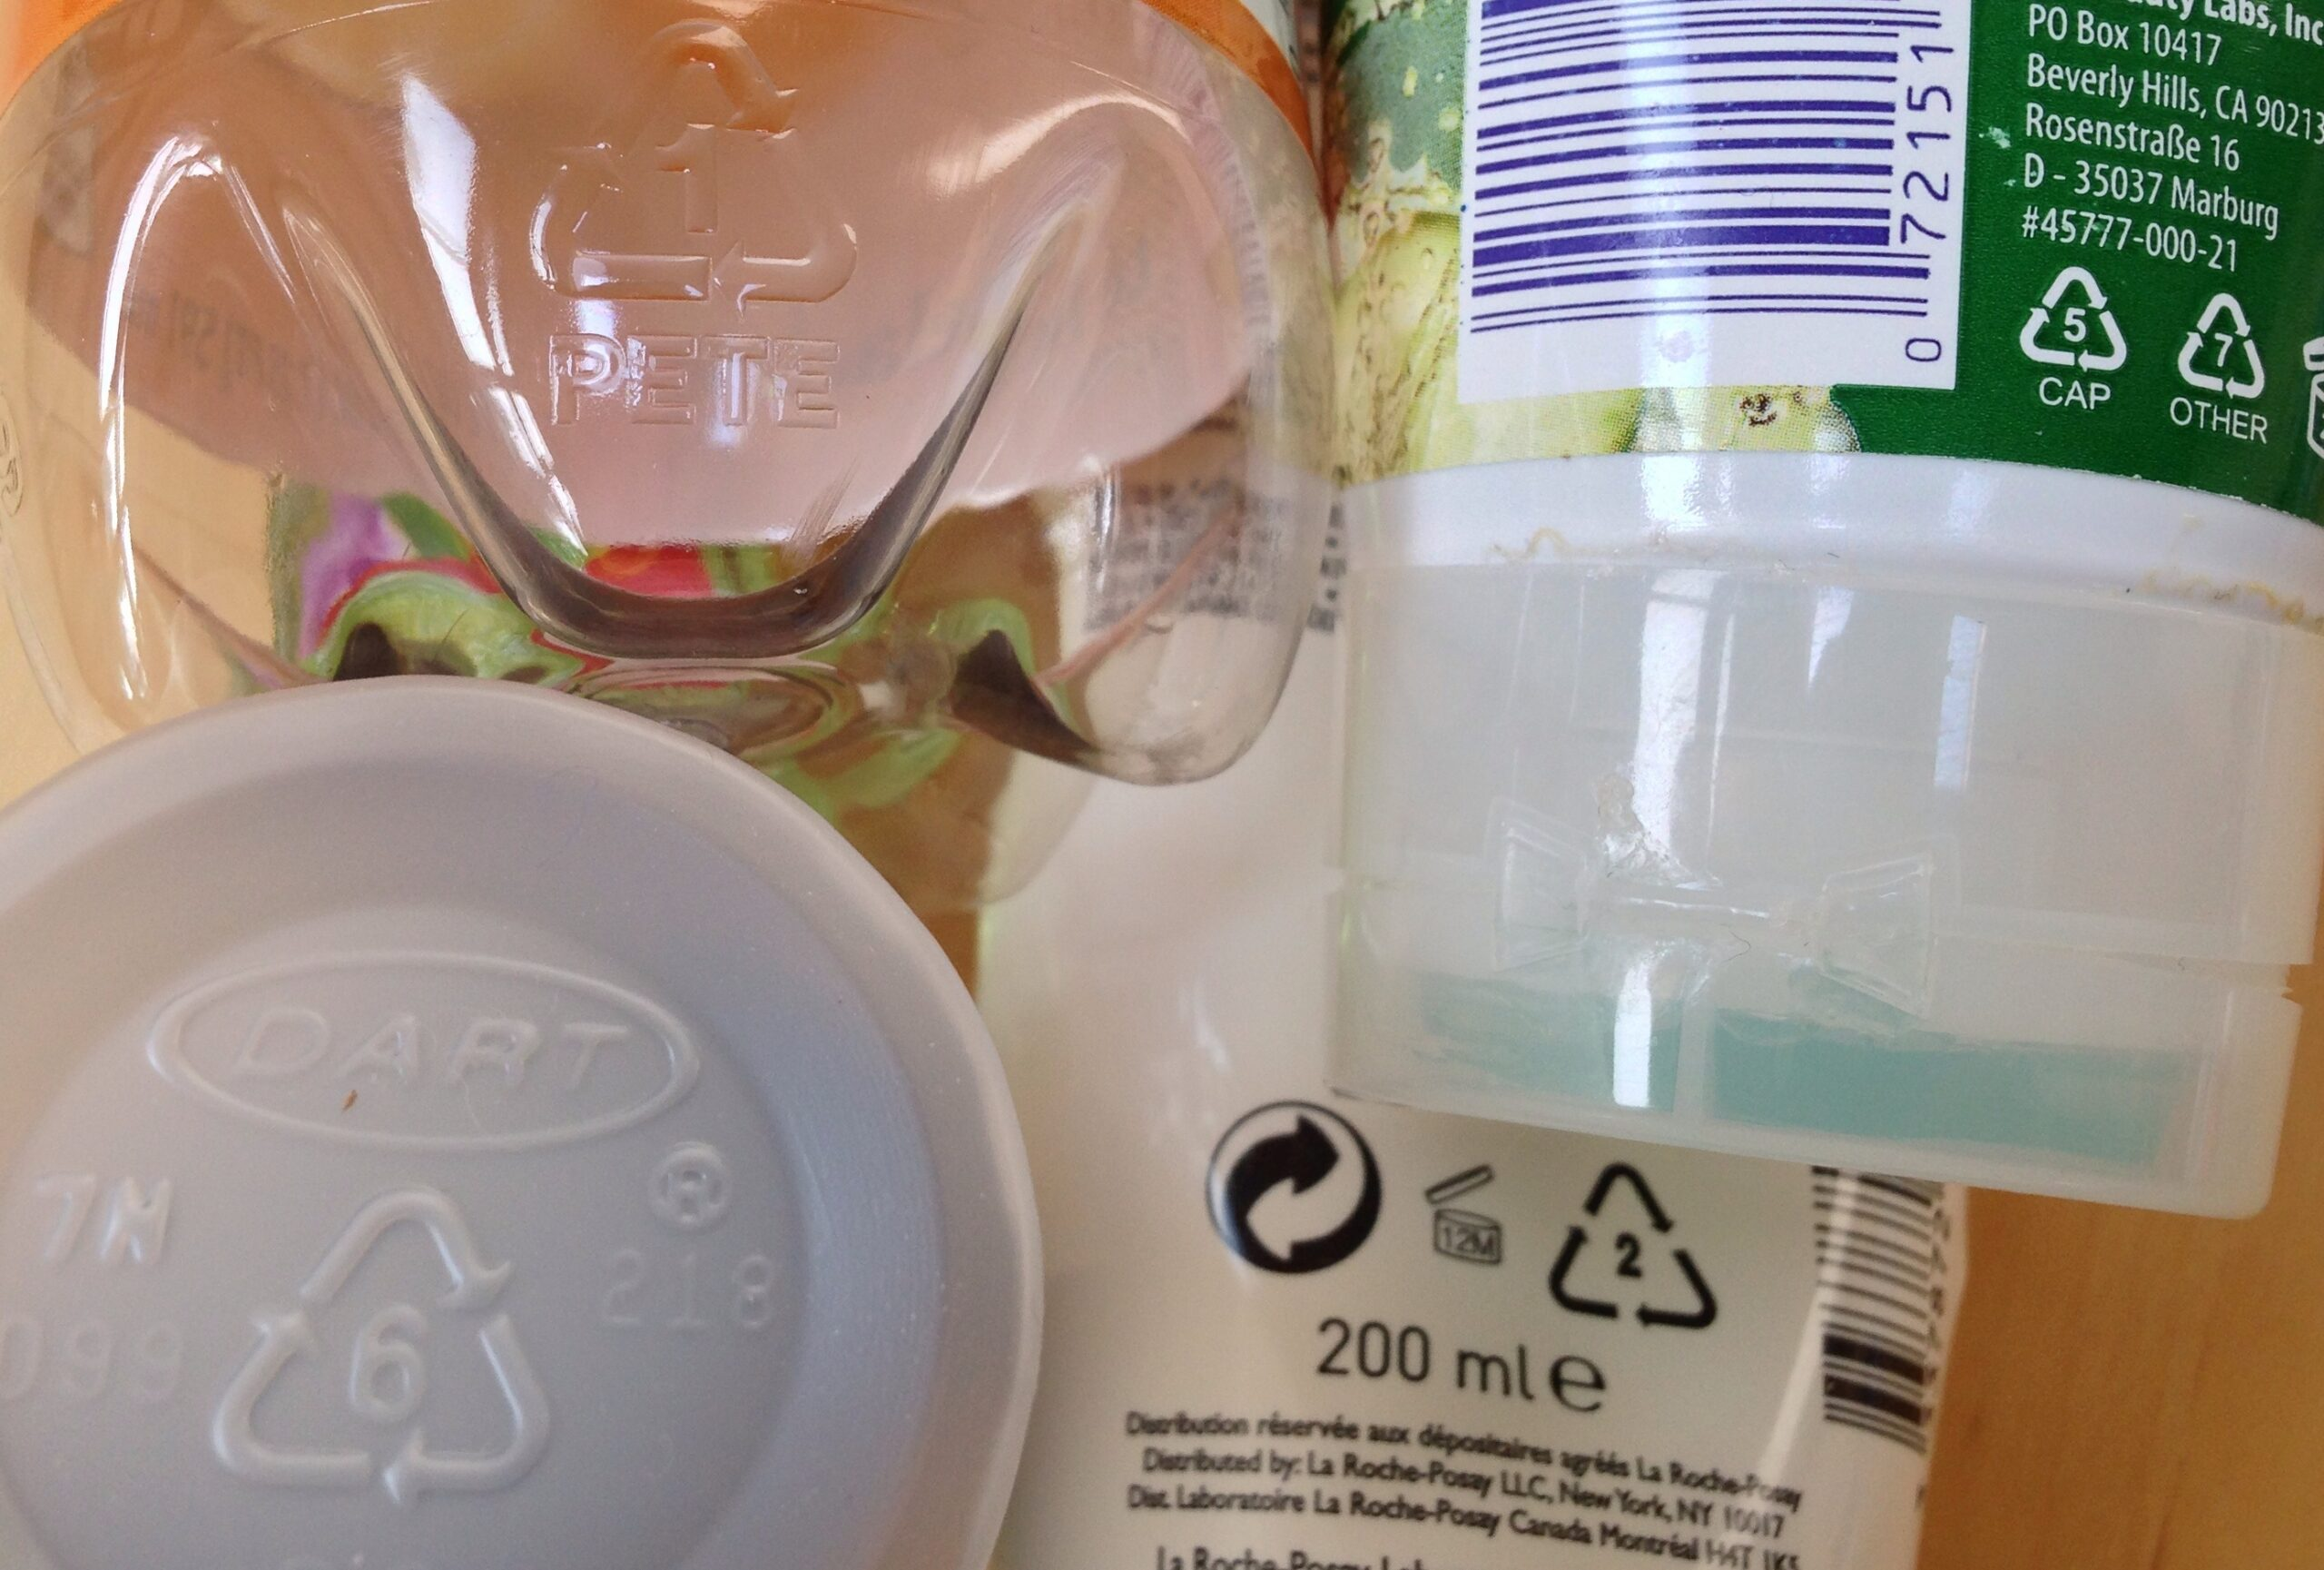 Recycling codes on consumer products and packaging.